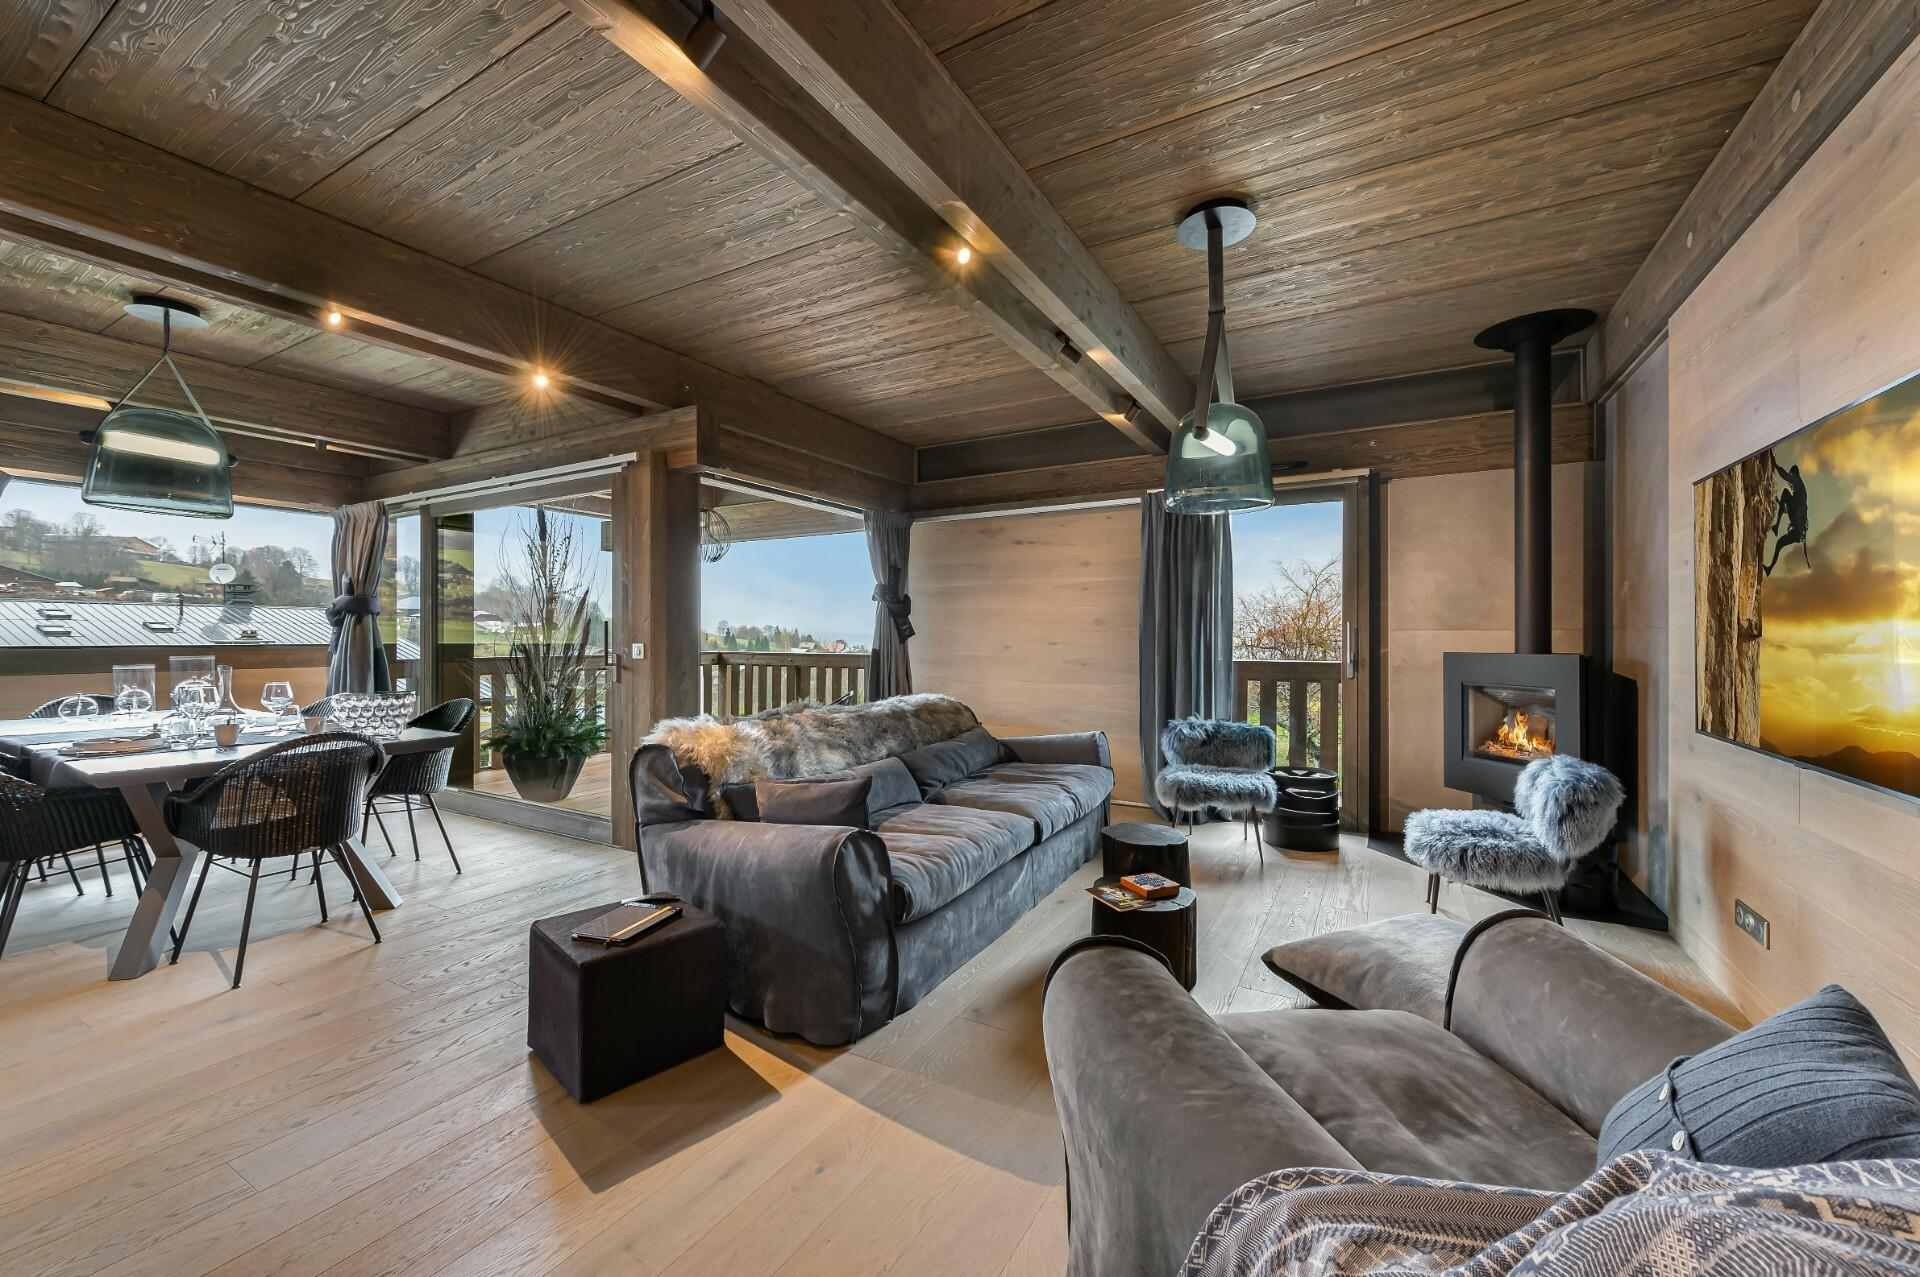 CHALET NEUF SKIS AUX PIEDS